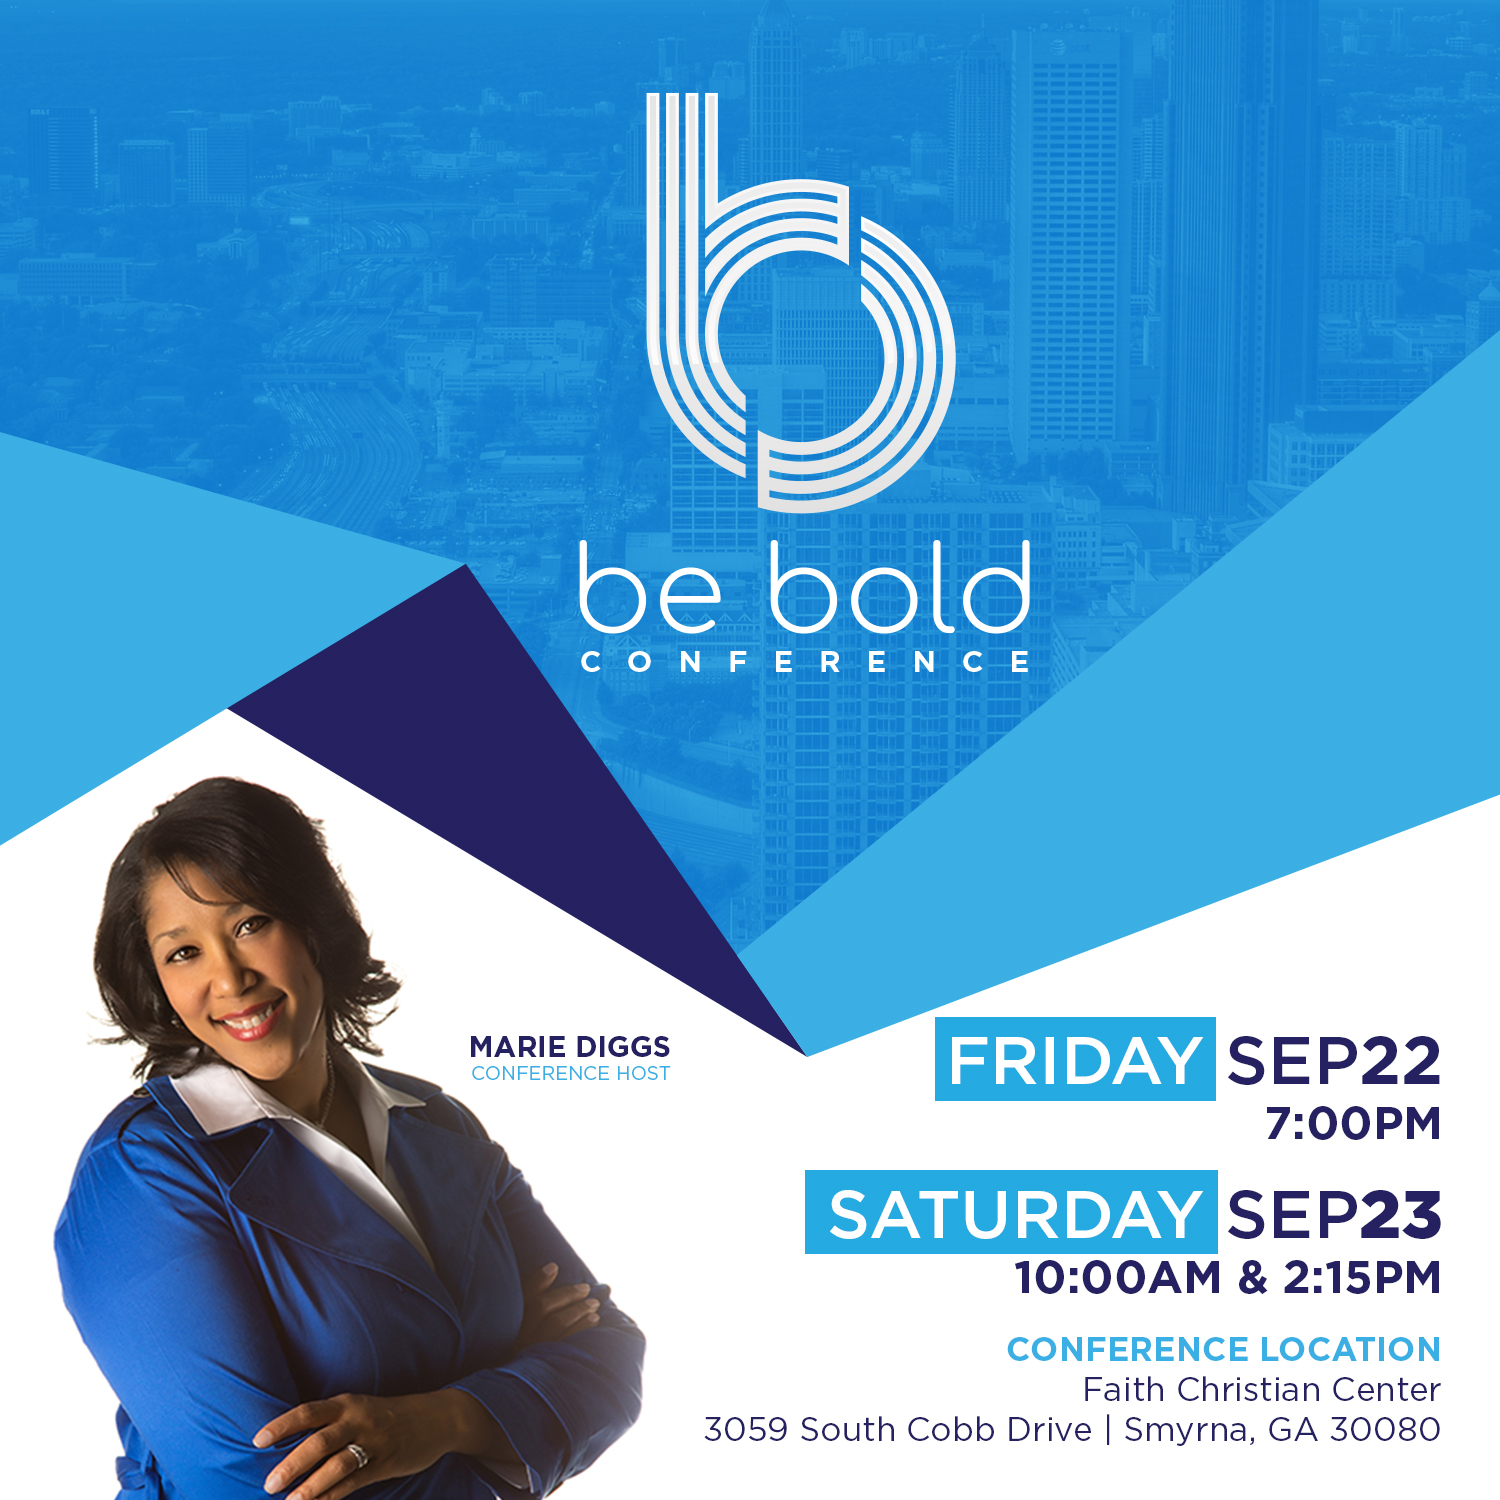 Be Bold Conference